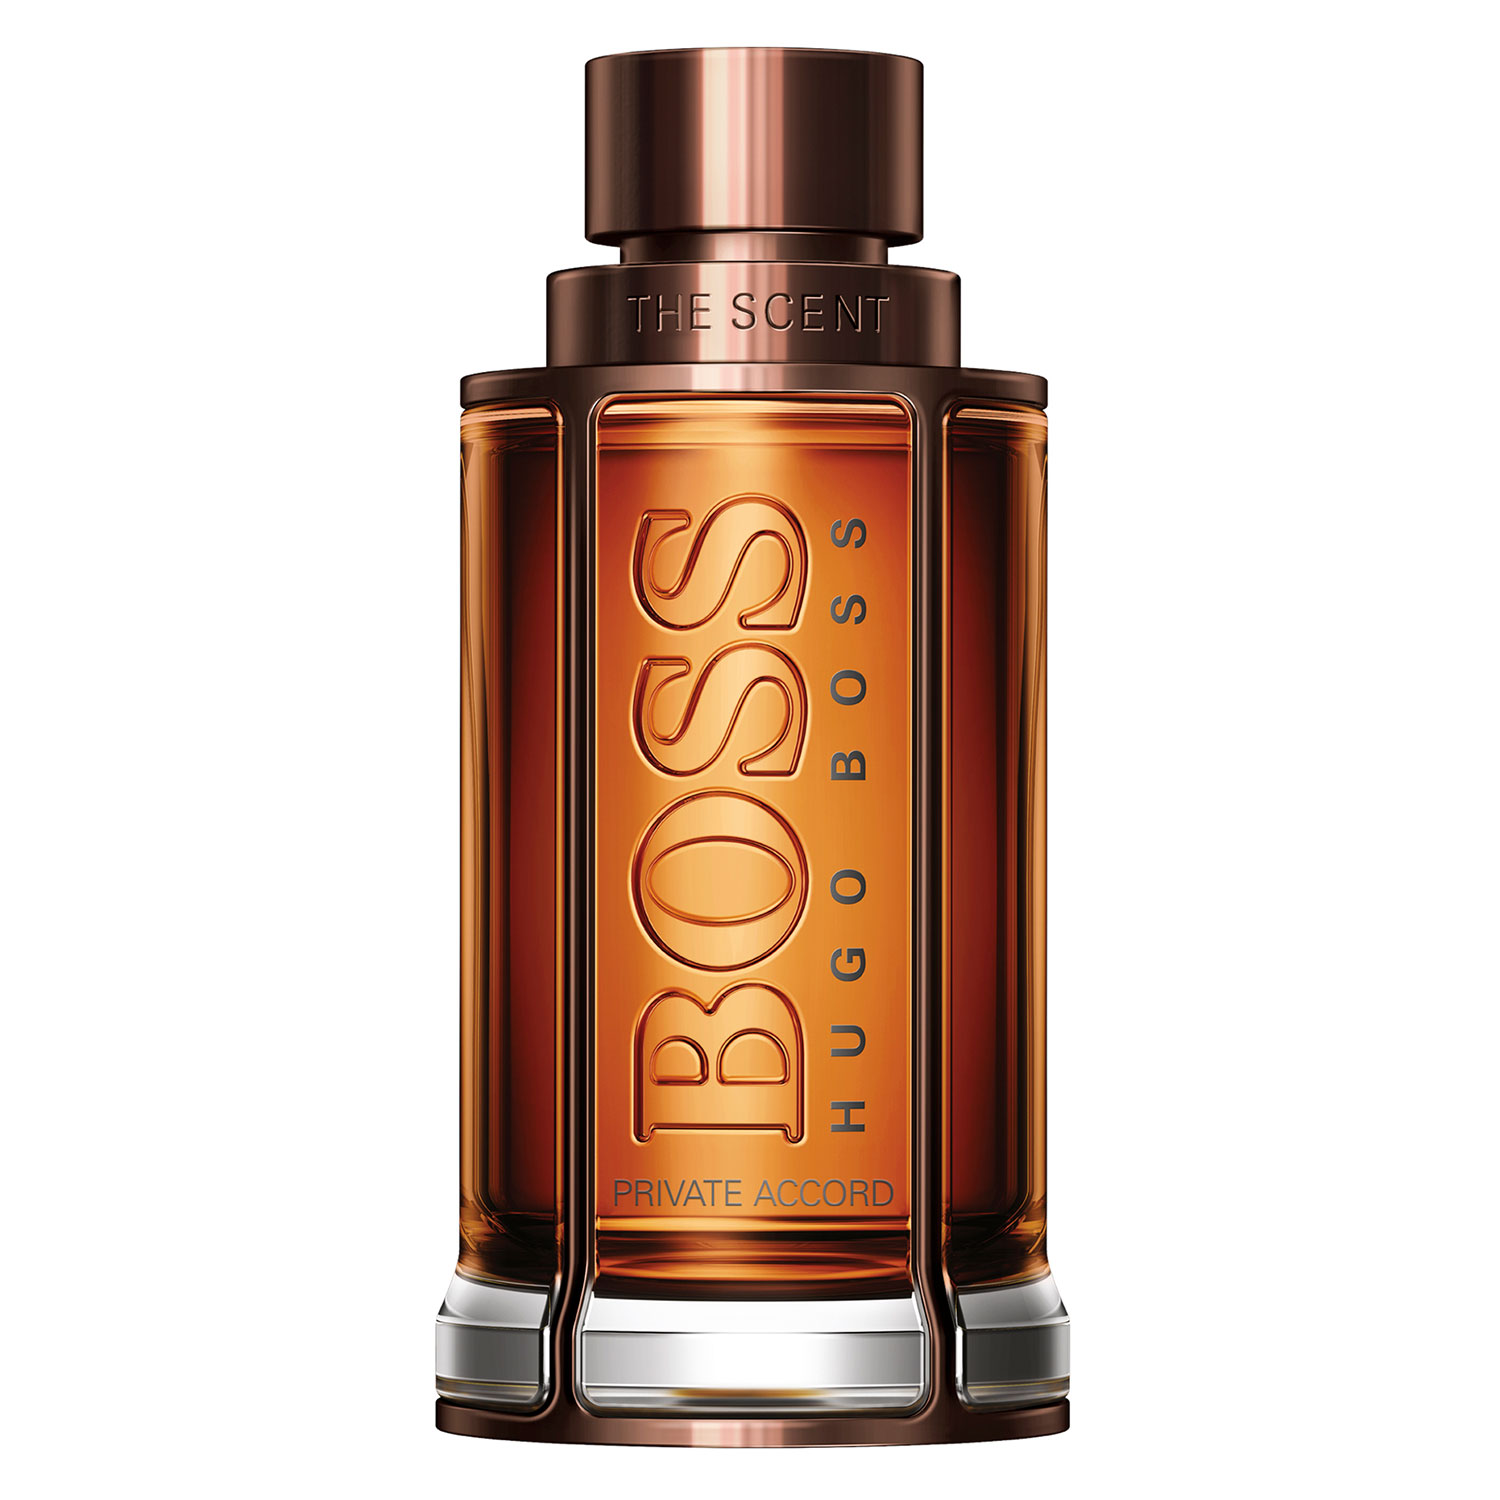 Boss The Scent - Private Accord Eau de Toilette for Him